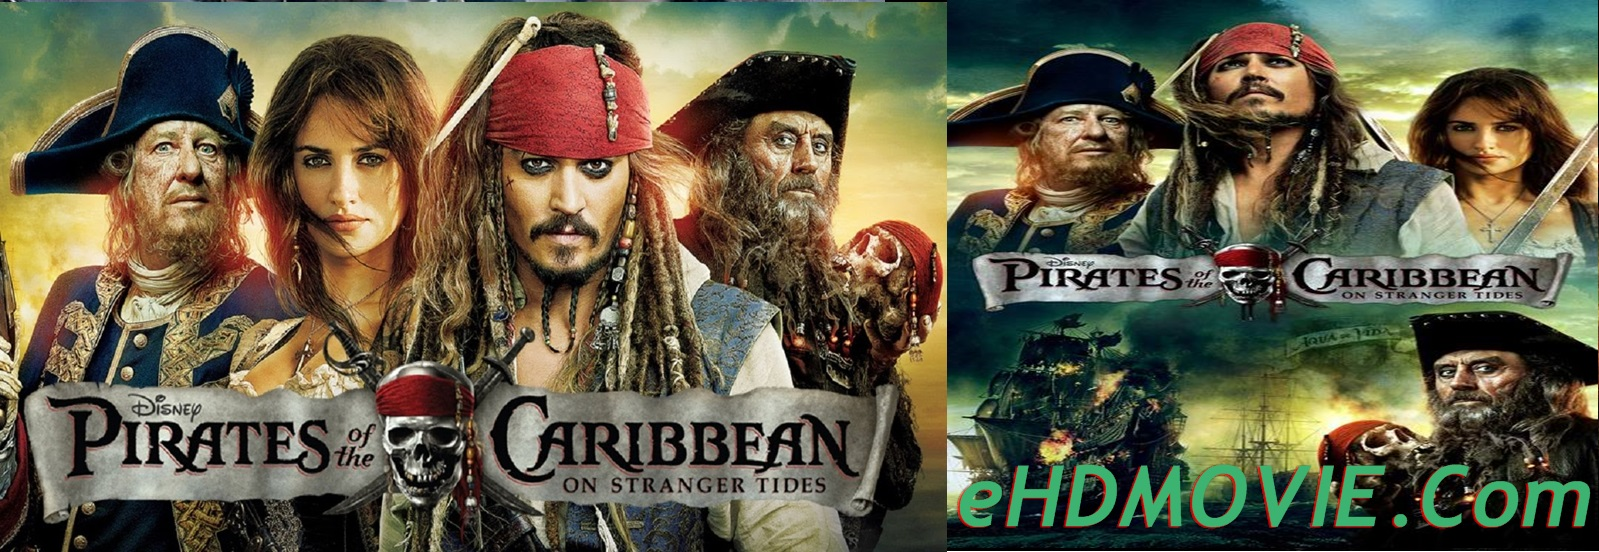 Pirates of the Caribbean: On Stranger Tides 2011 Full Movie Dual Audio [Hindi – English] 720p – 480p ORG BRRip 350MB – 900MB - 1.4GB ESubs Free Download